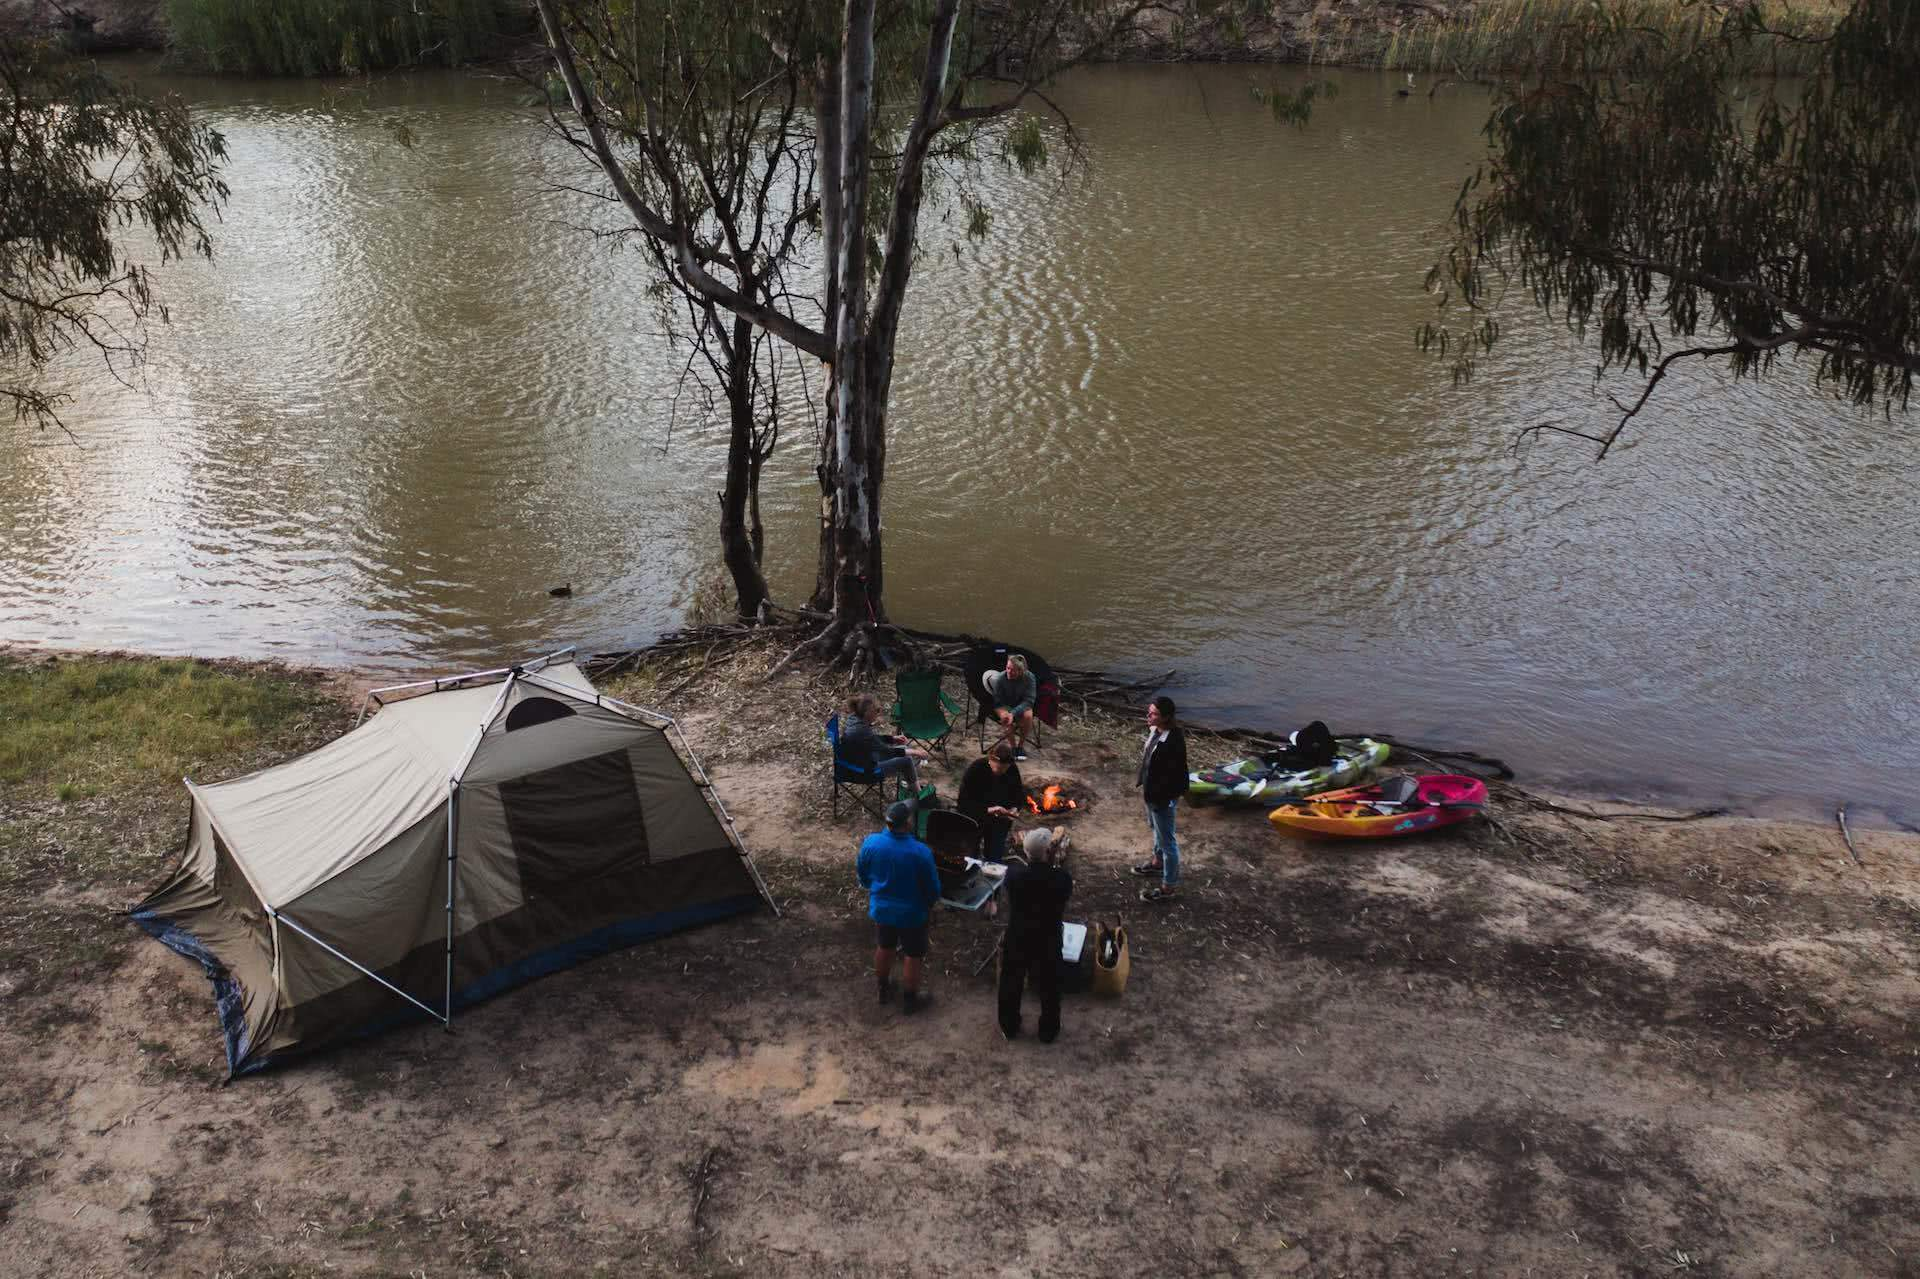 Deniliquin Should Be Your Next Weekend On The River, photo by Ben Savage, deniliquin, nsw, visit deni, drone, camping